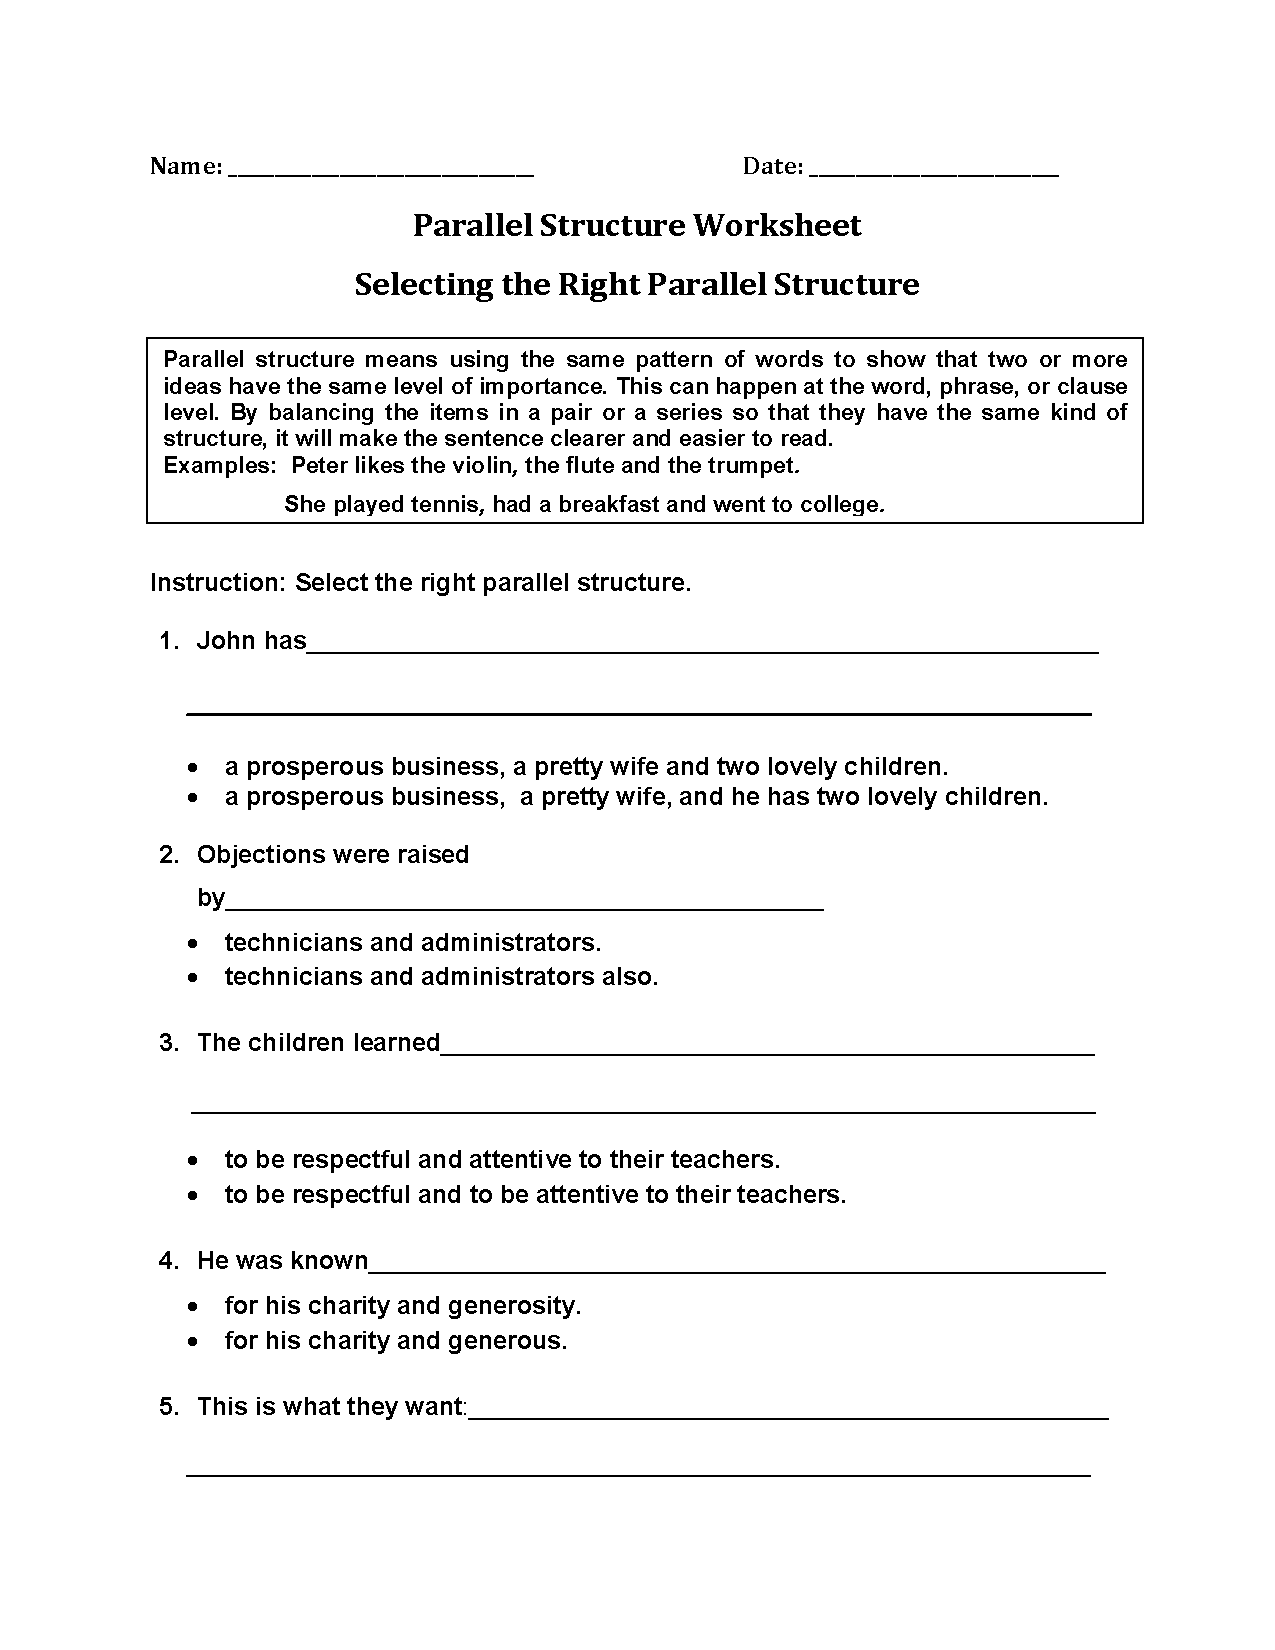 Grammar Parallel Structure Lesson Plans &amp- Worksheets